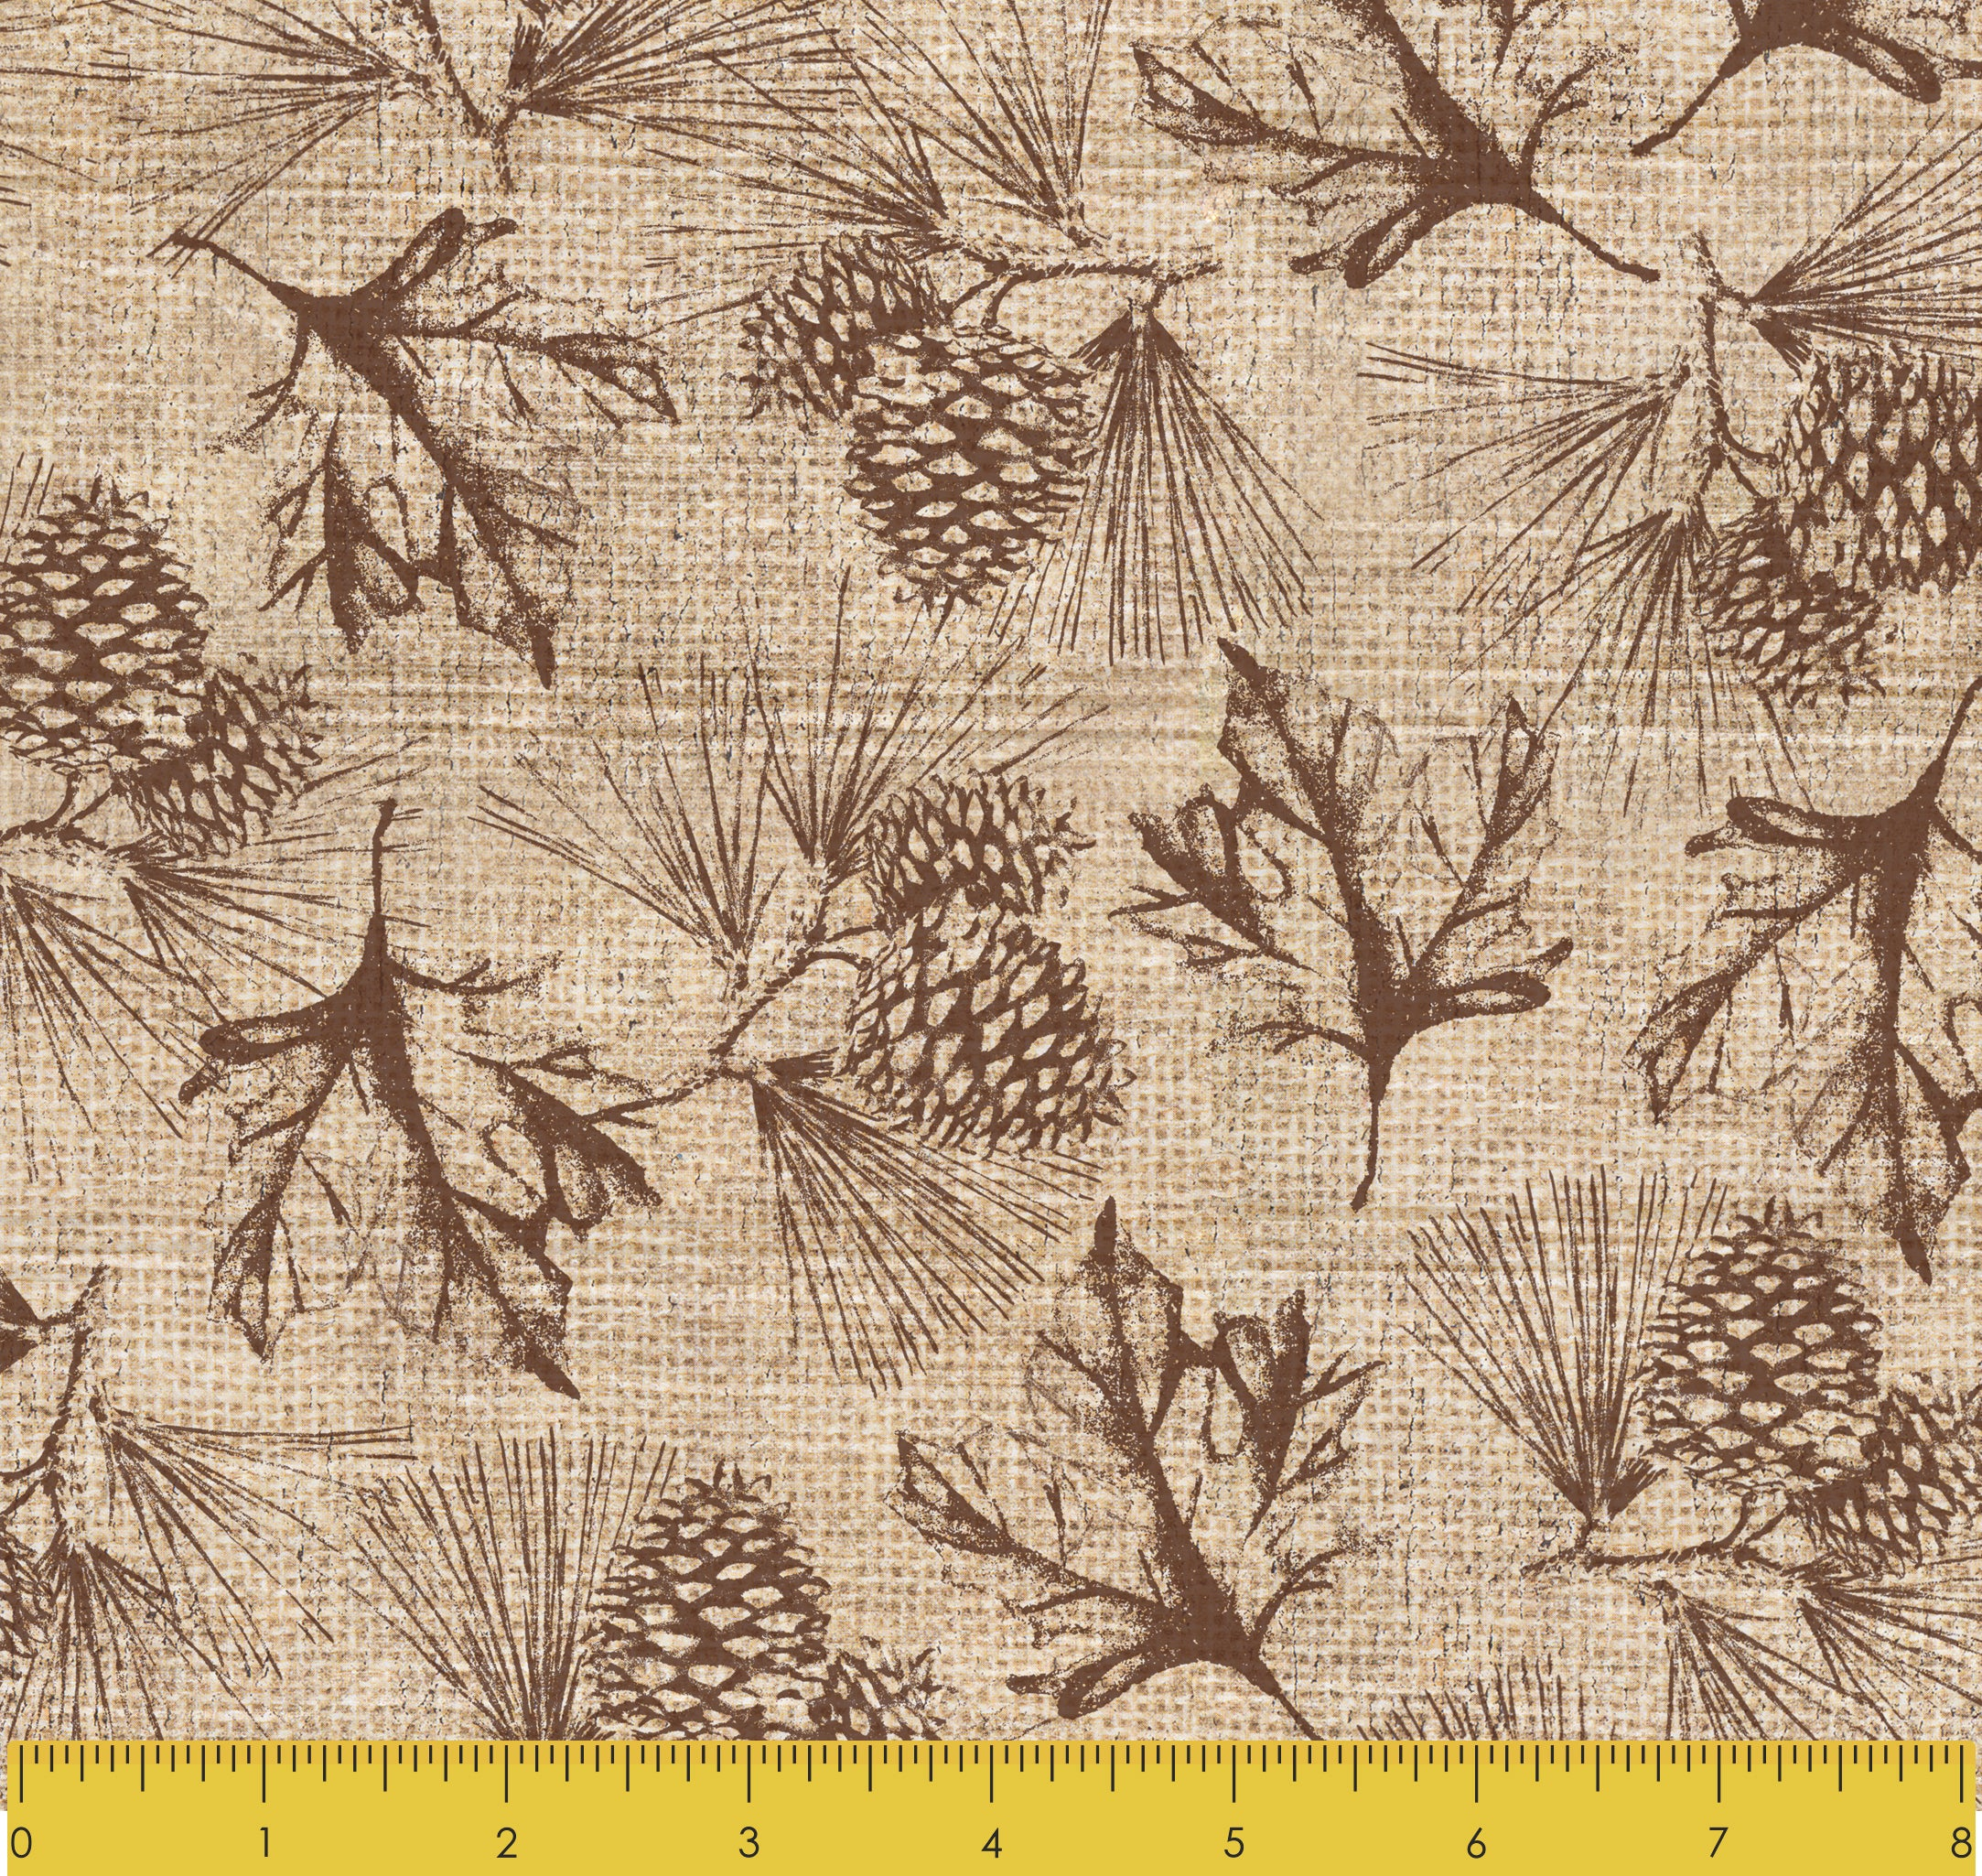 "Stitch & Sparkle Paul Brent-Lodge Farm-Pine Leaves 100% Cotton Fabric 44"" Wide, Quilt Crafts Cut by The Yard"